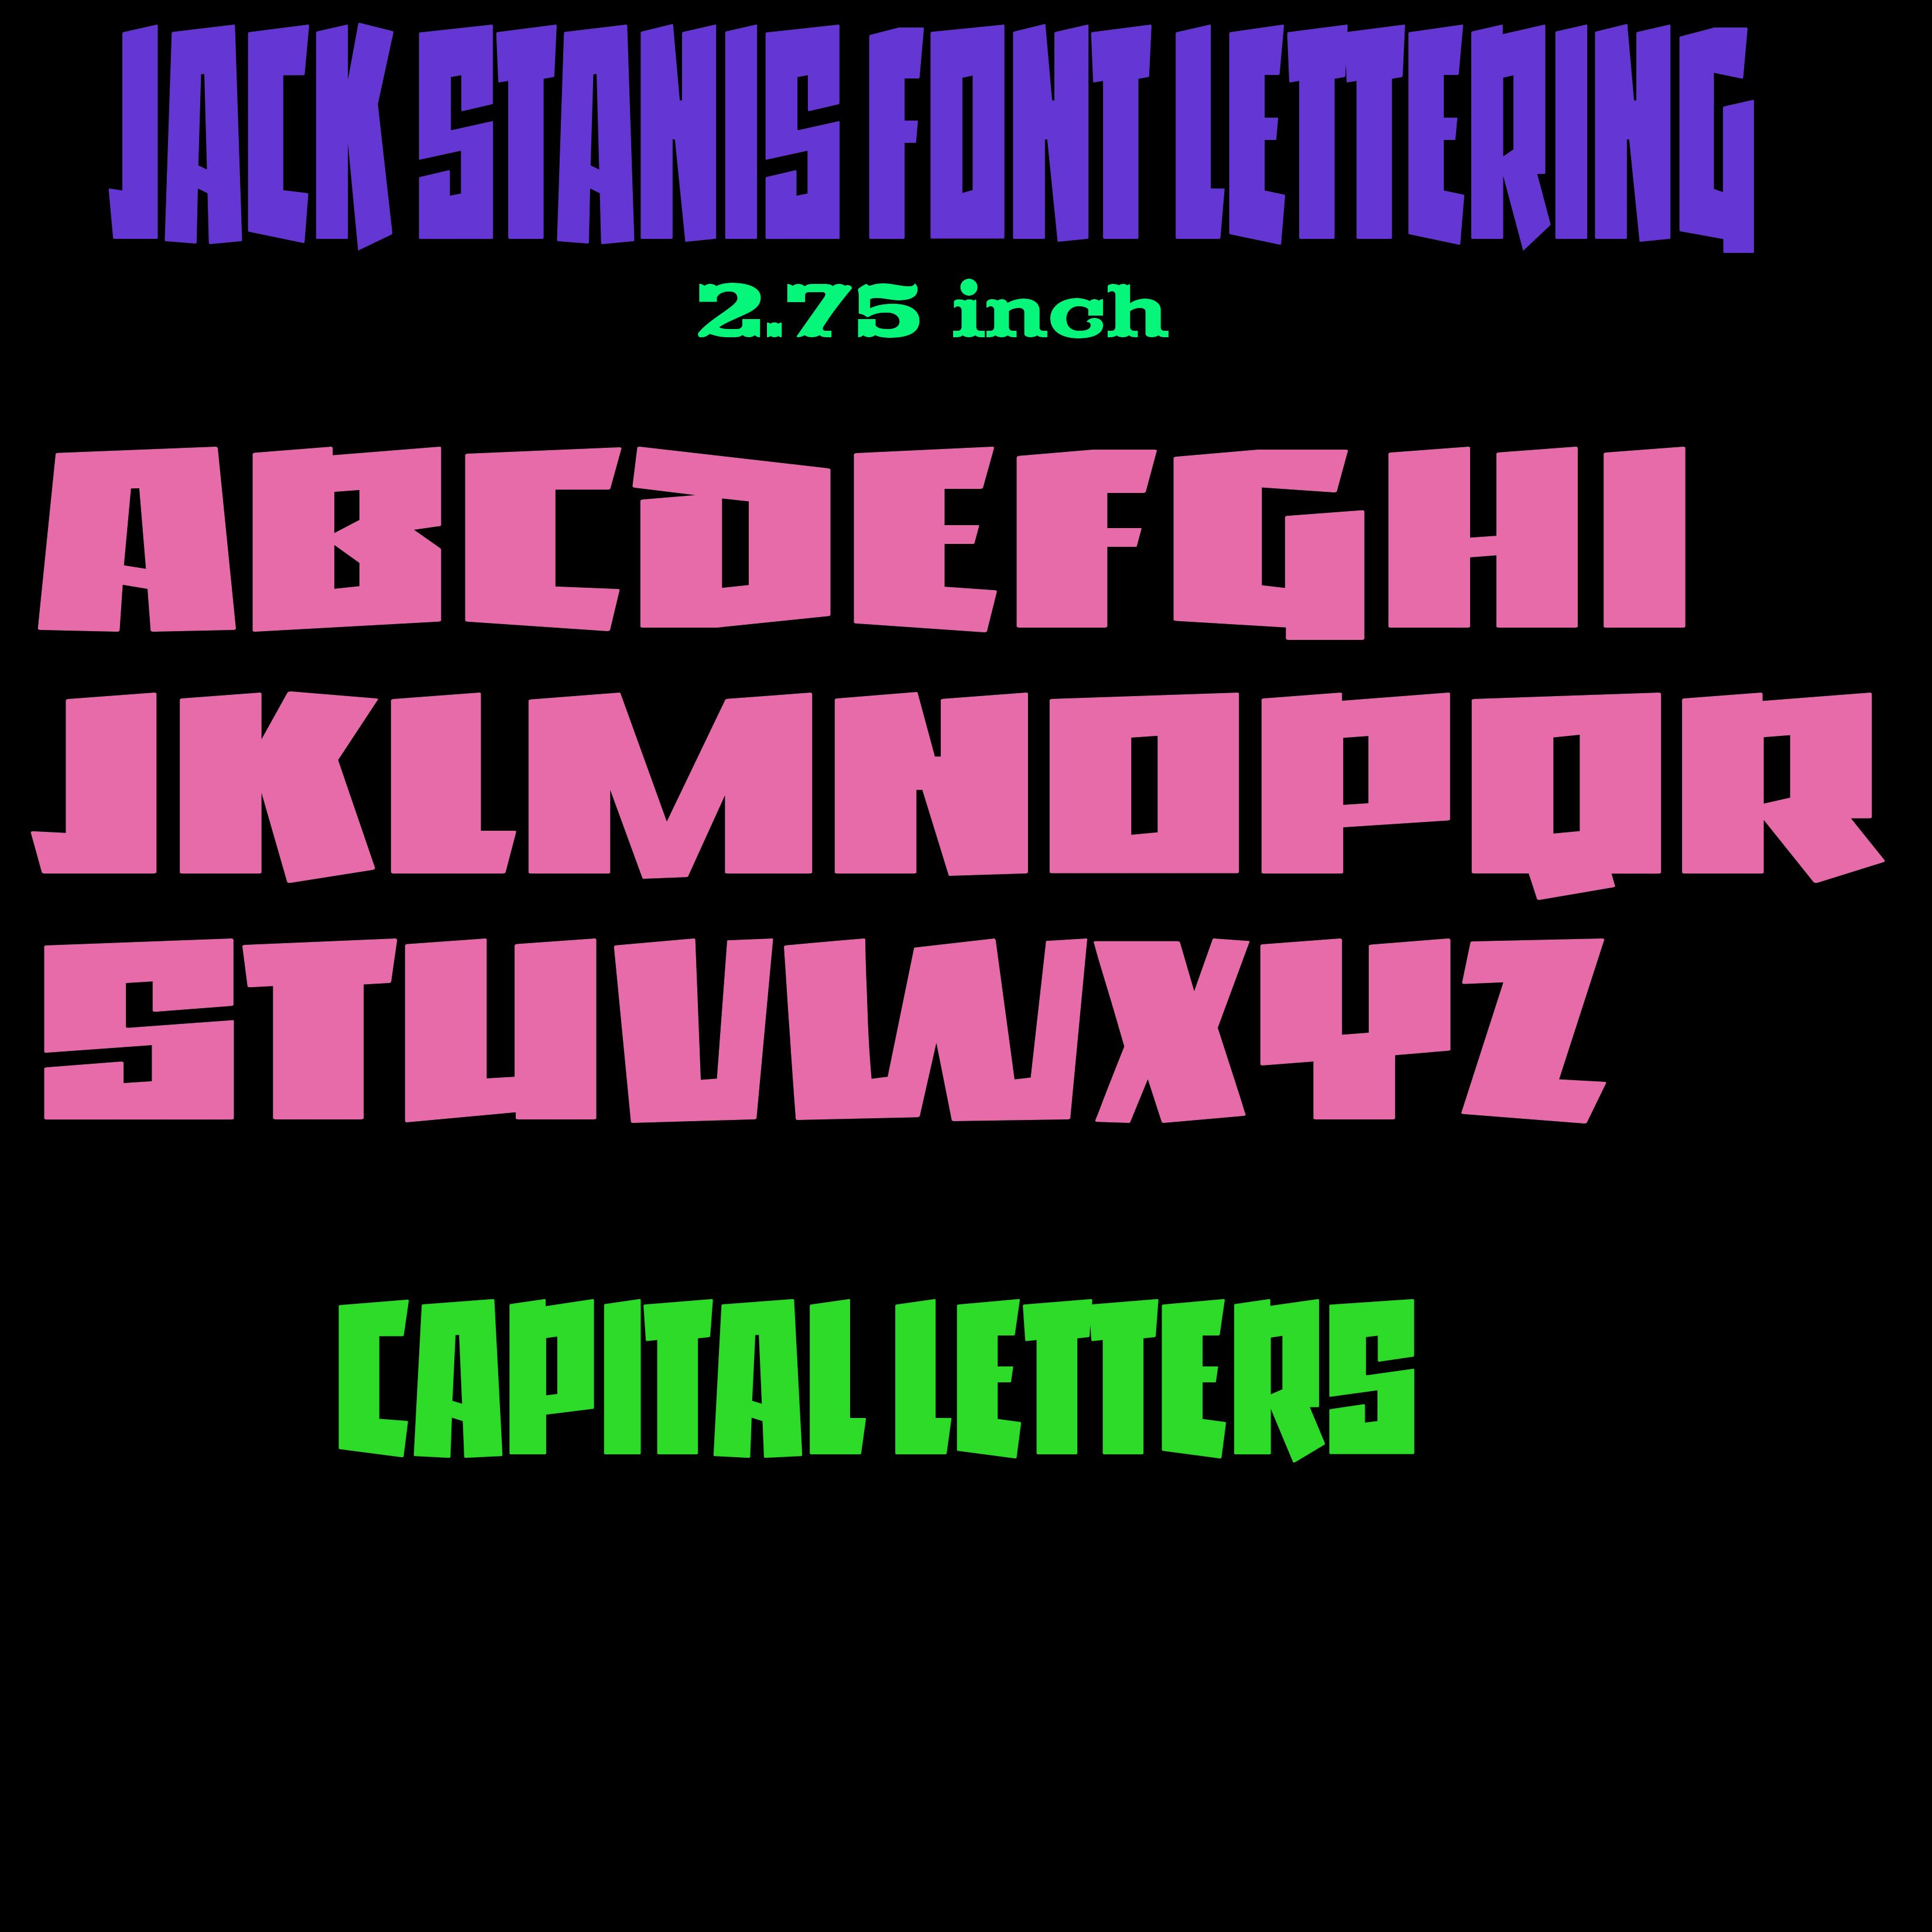 Jack Stanis Font Vinyl Lettering 2 75 Inch Handmade Vinyl Letters Outdoor Uv And Weather Resistant Price Is Per A Lettering Vinyl Lettering Custom Letters